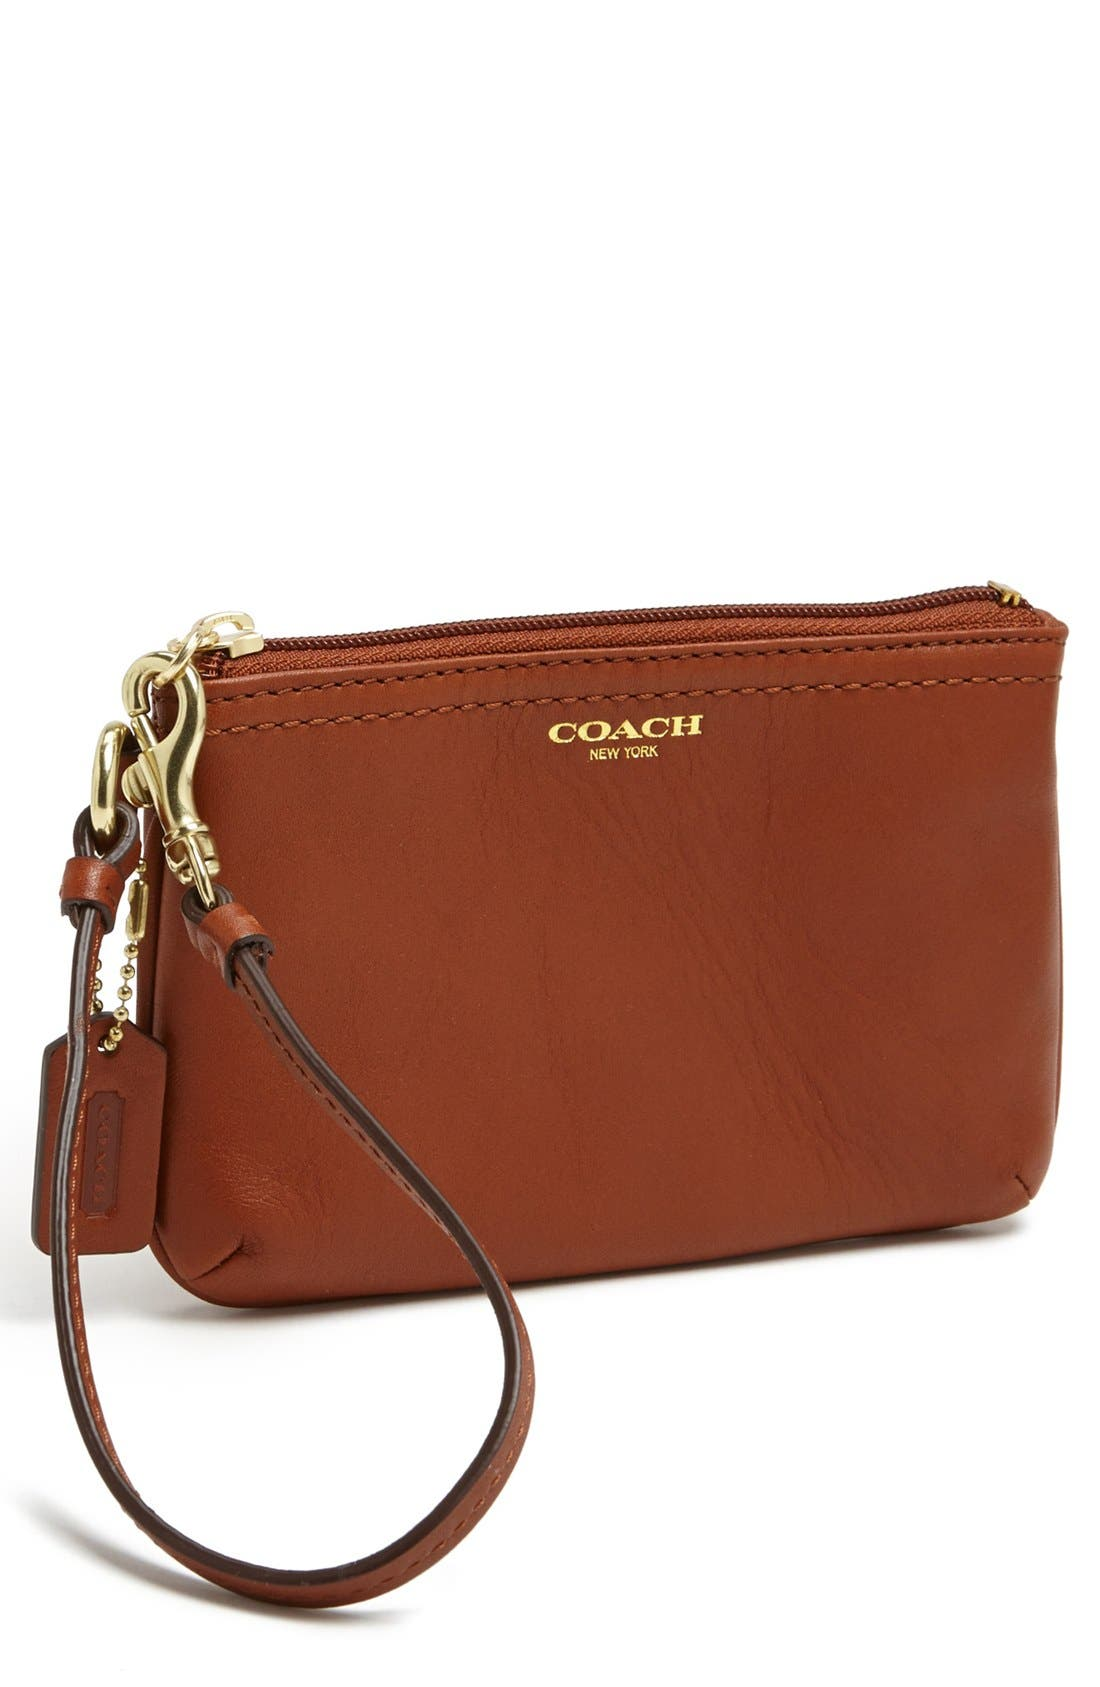 Main Image - COACH 'Small' Leather Wristlet